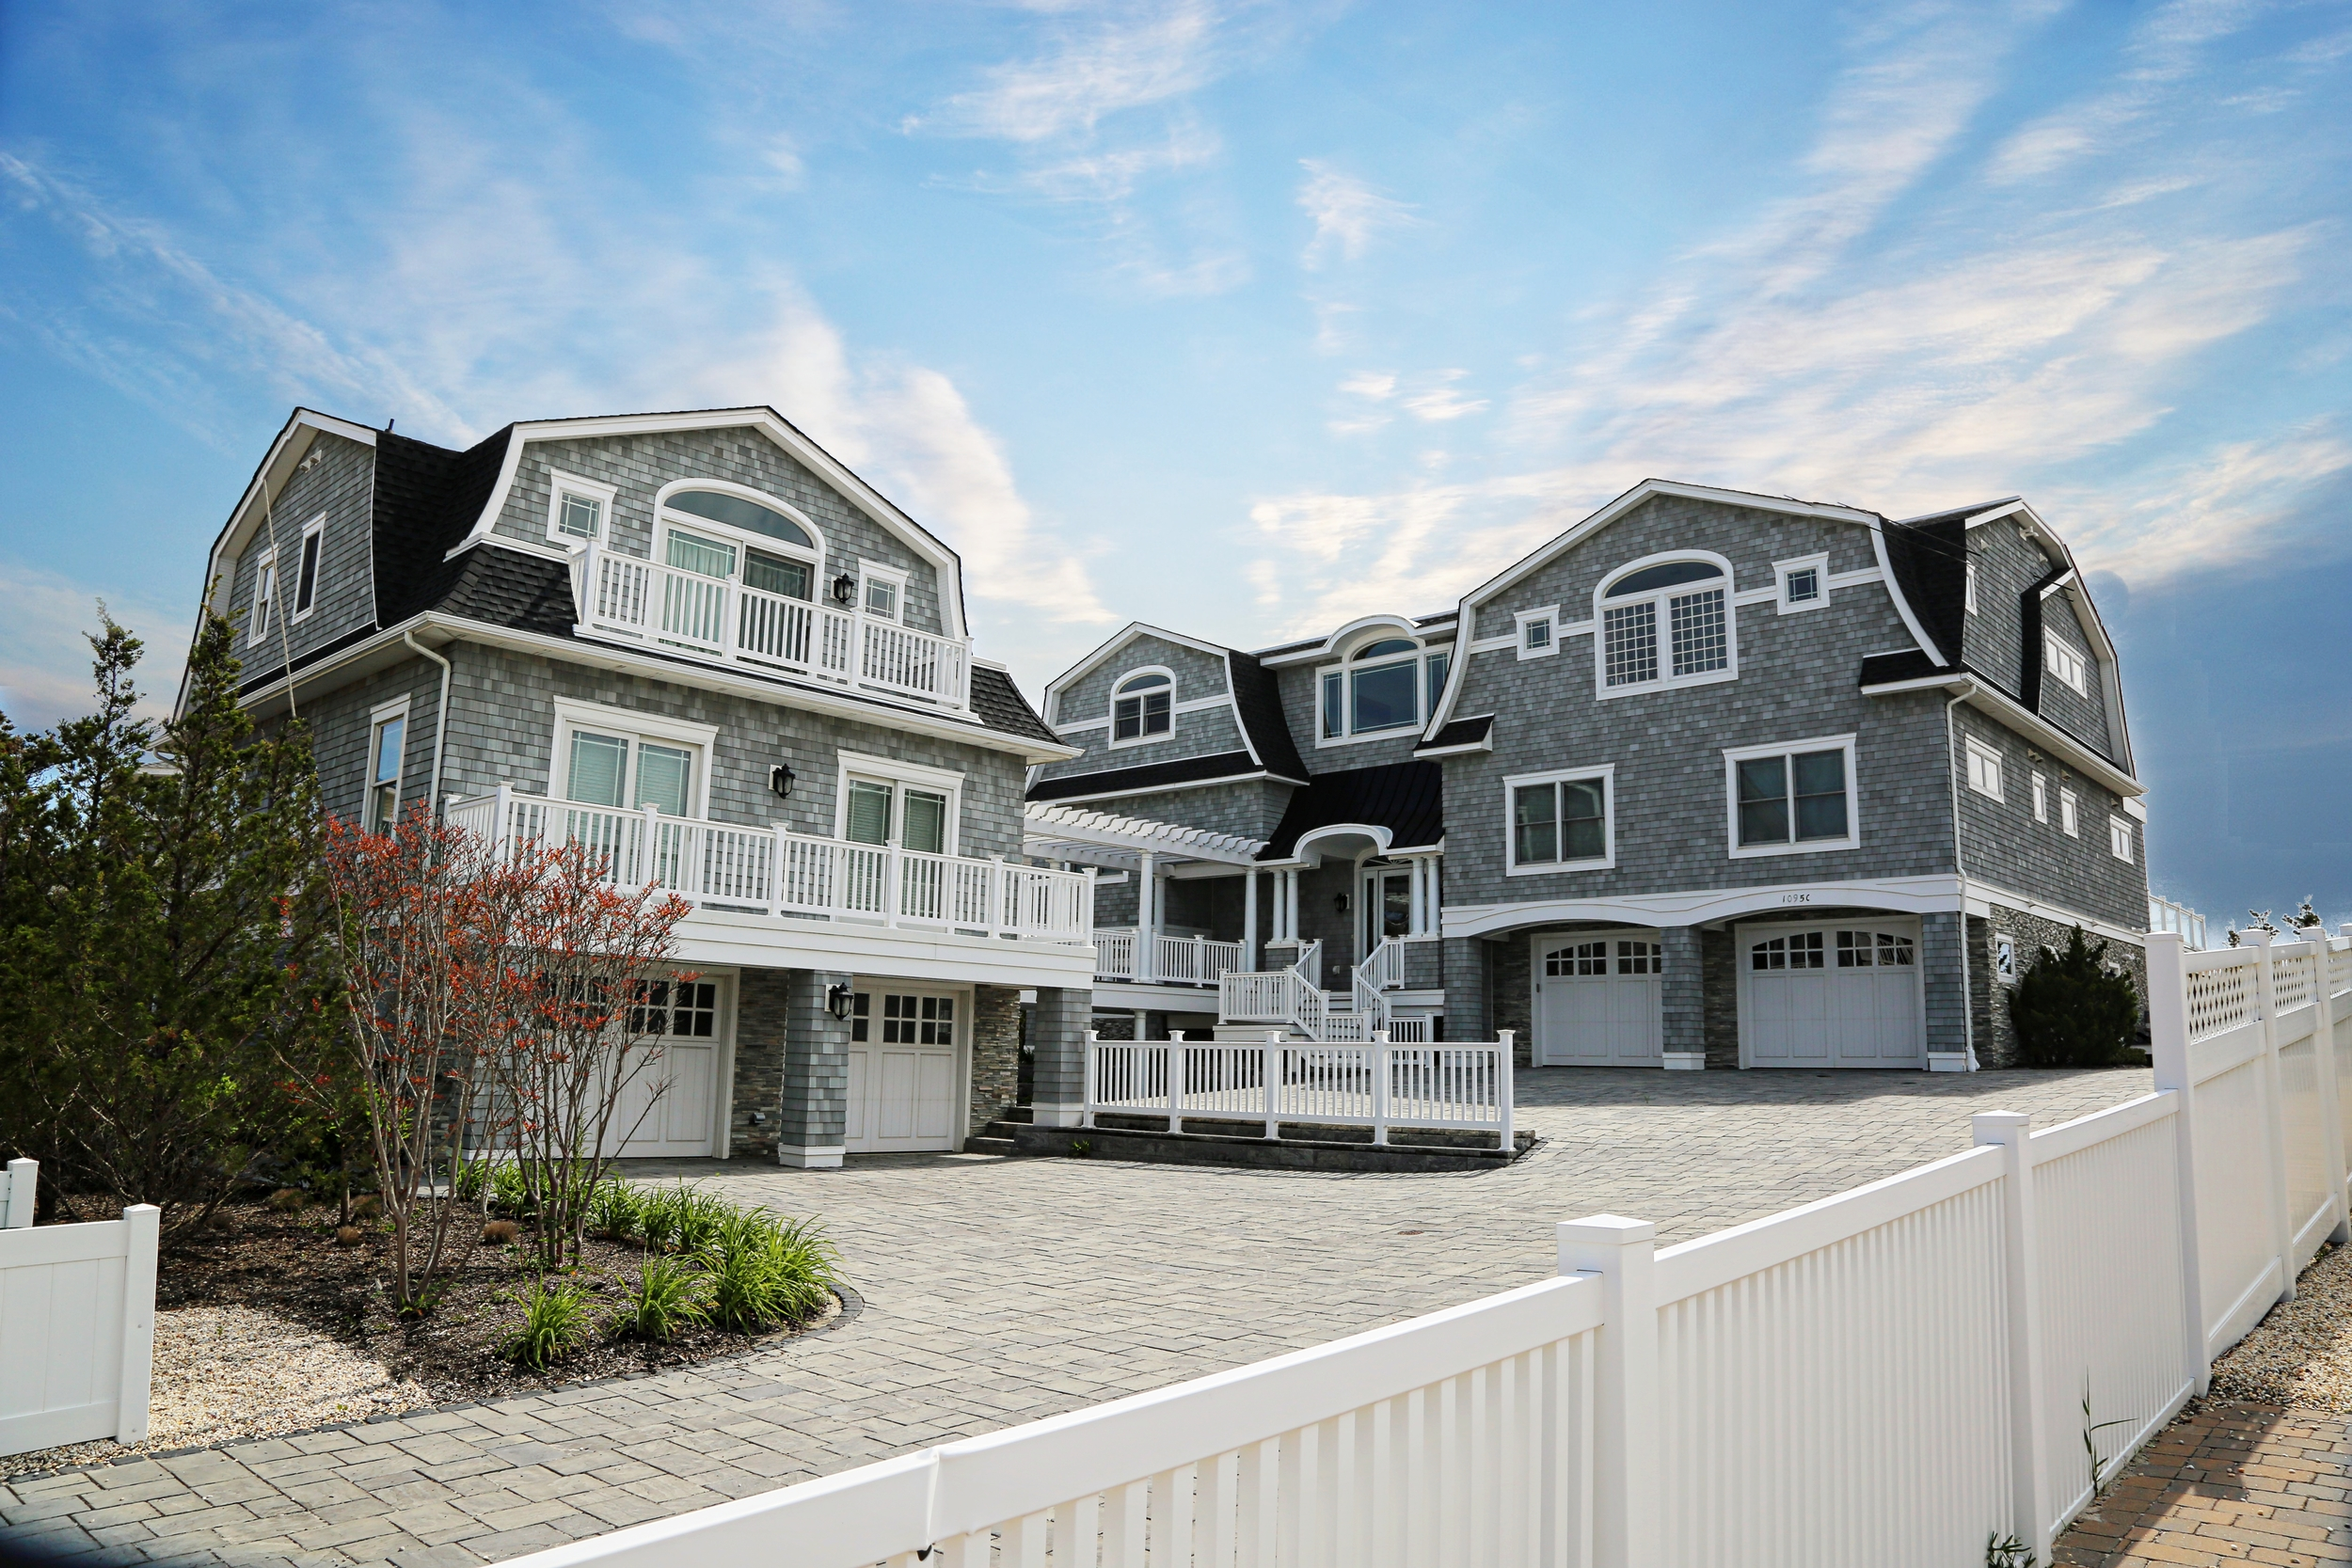 OUR GOAL IS TO DESIGN AND DEVELOP   LONG BEACH ISLAND'S     MOST EXCLUSIVE    PROPERTIES.    VIEW OUR PORTFOLIO